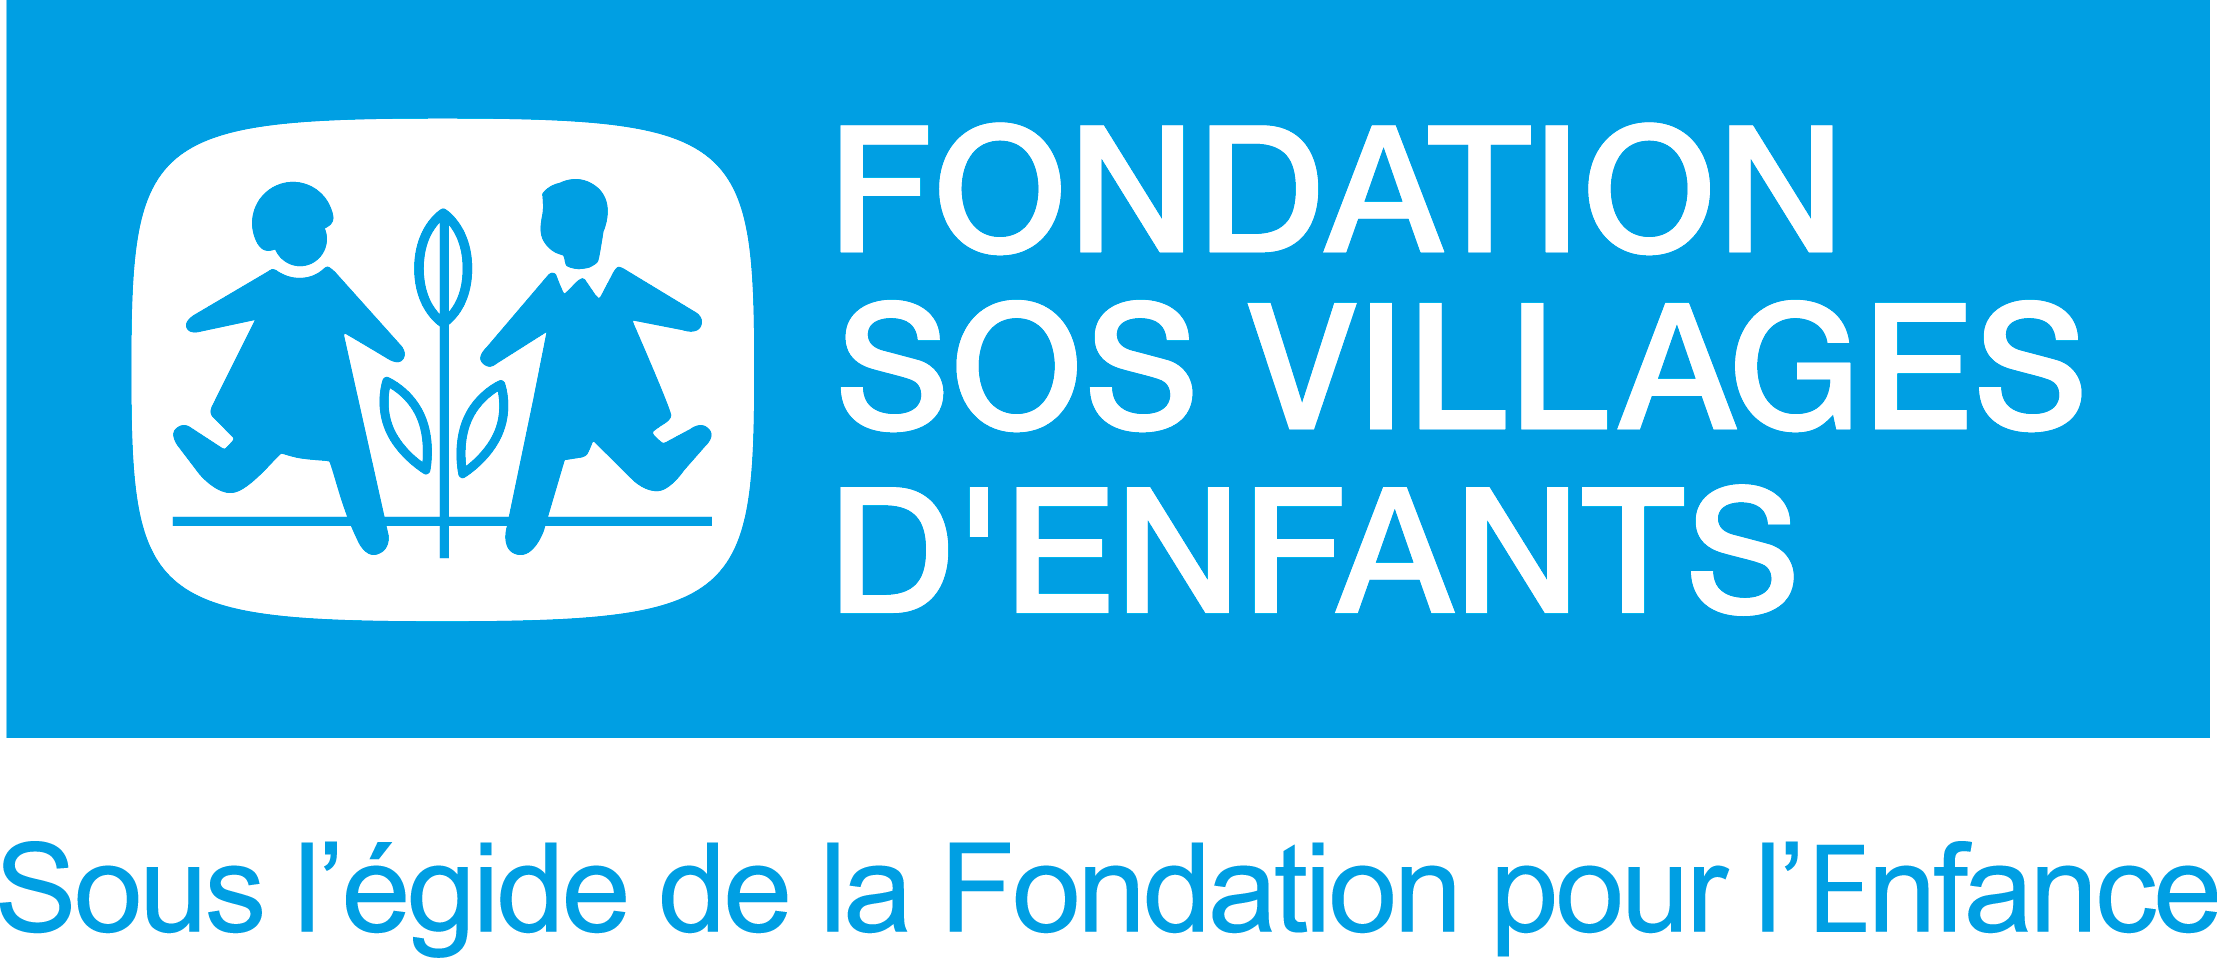 Fondation SOS Villages d'Enfants